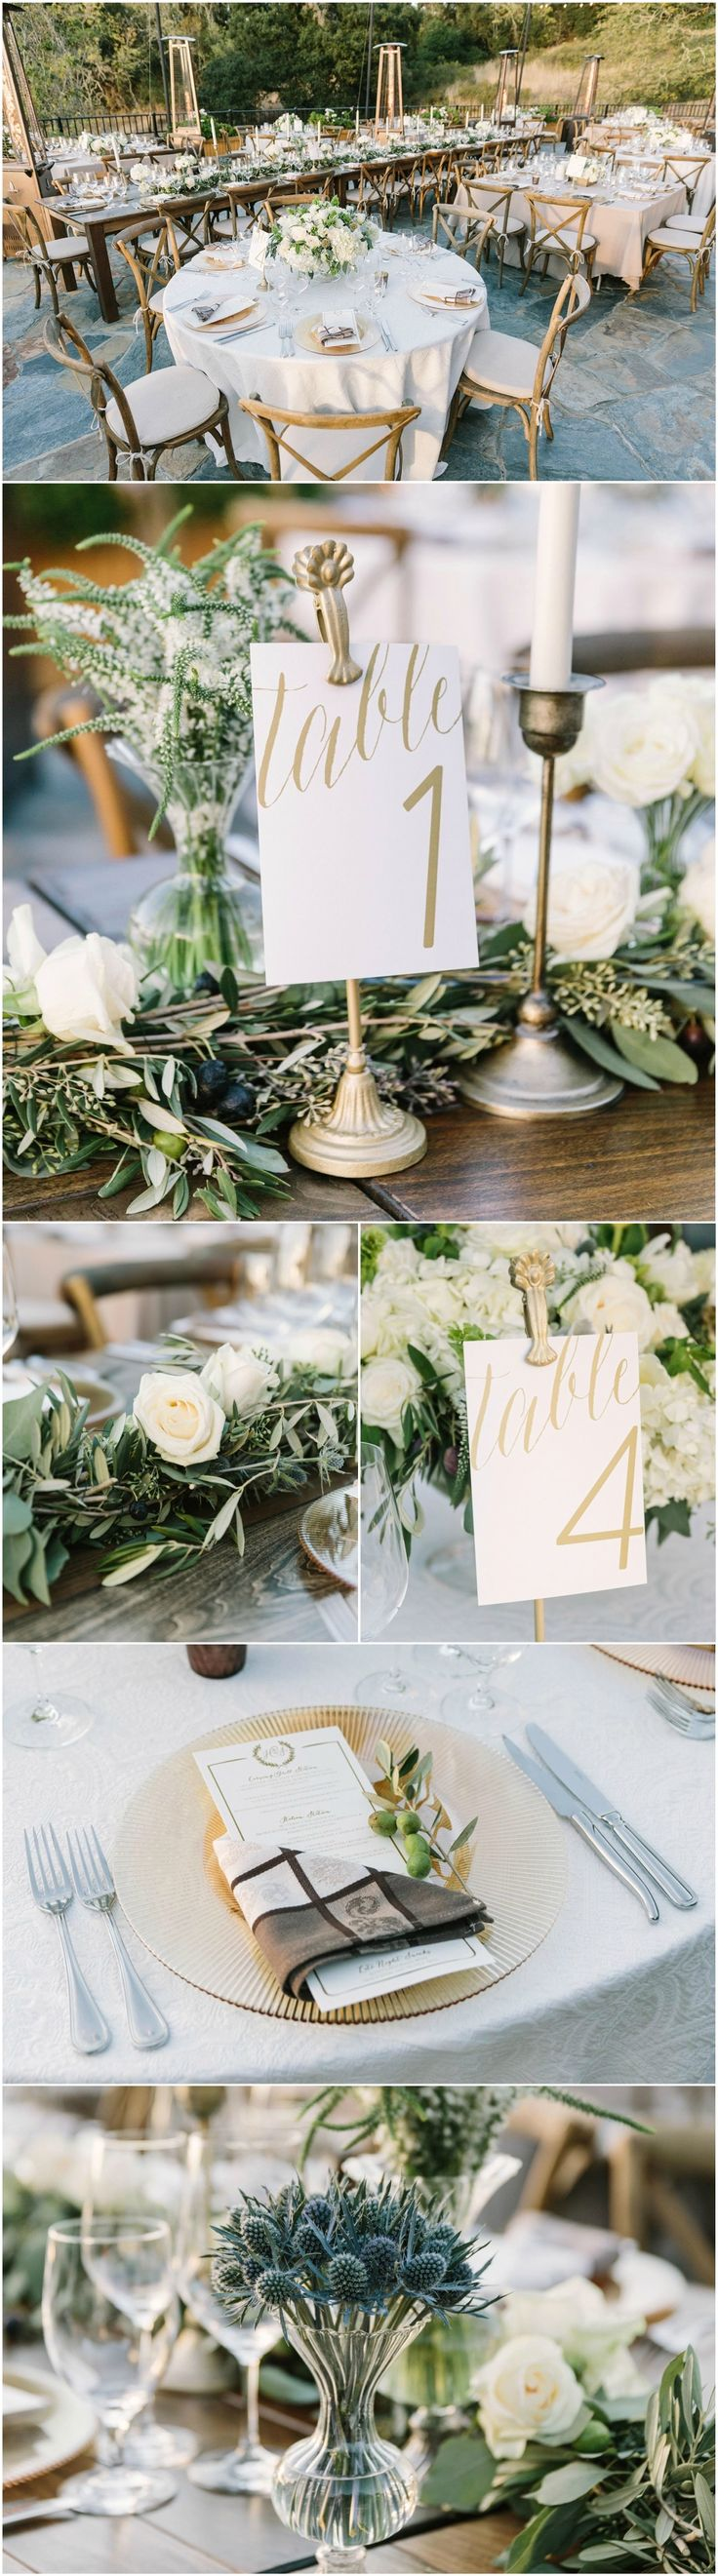 Winery wedding, candlesticks, gold table numbers, dishtowel napkins, seeded eucalyptus, cross back chairs, blue thistle // The Edges Wedding Photography